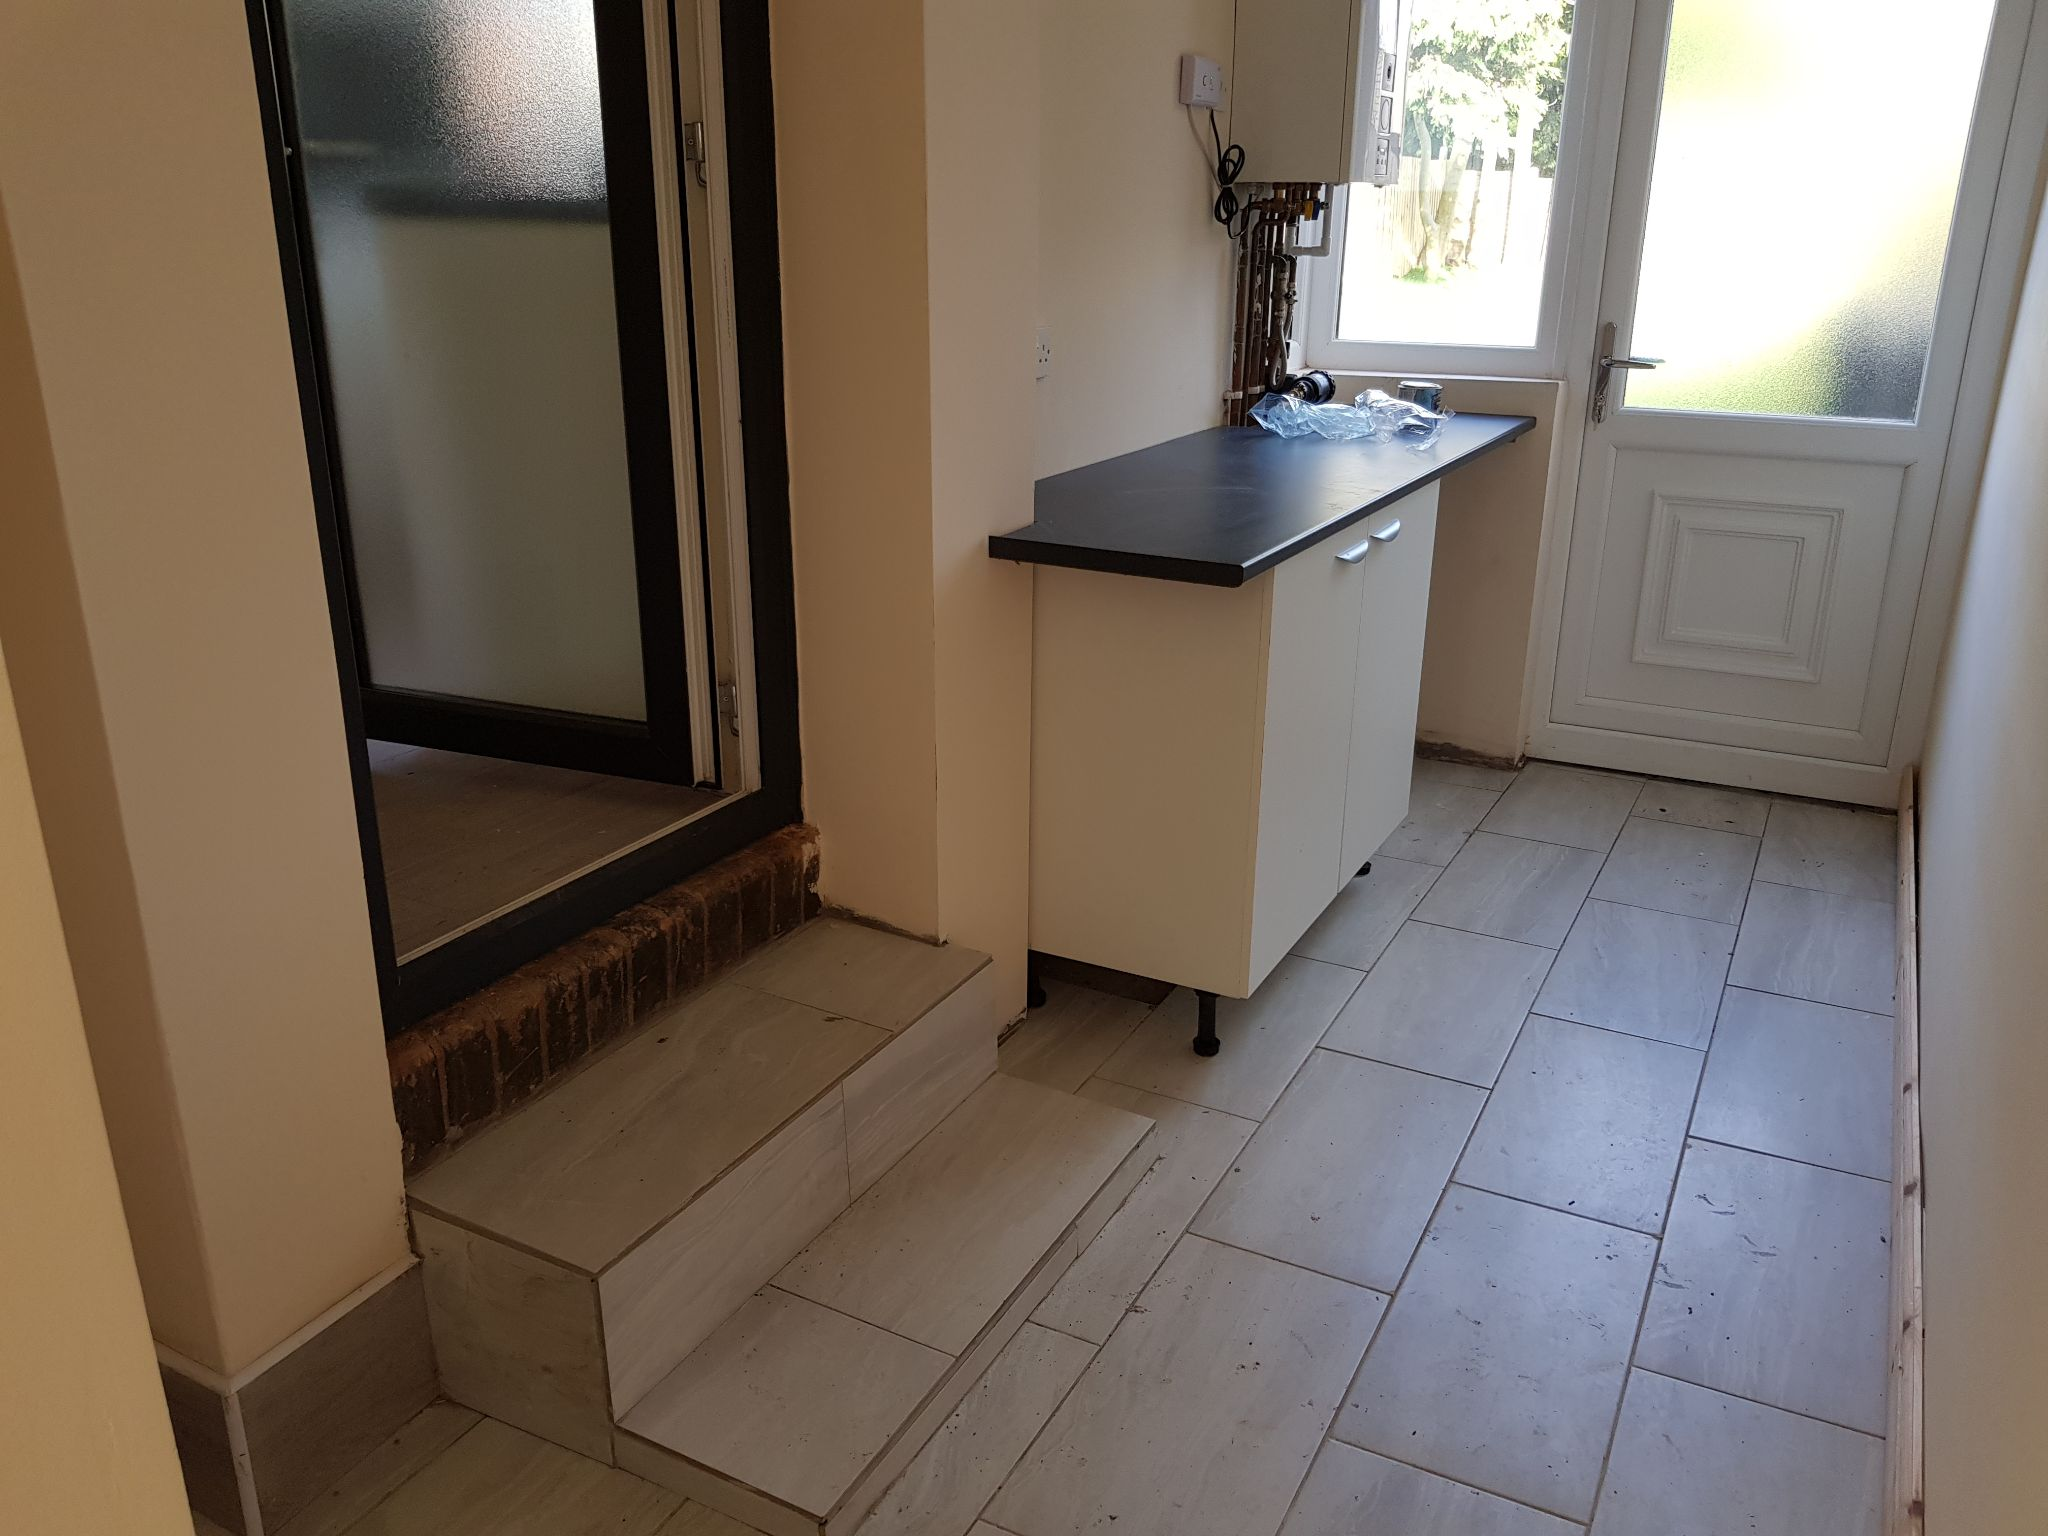 3 Bedroom Semi-detached House For Sale - Side Utility